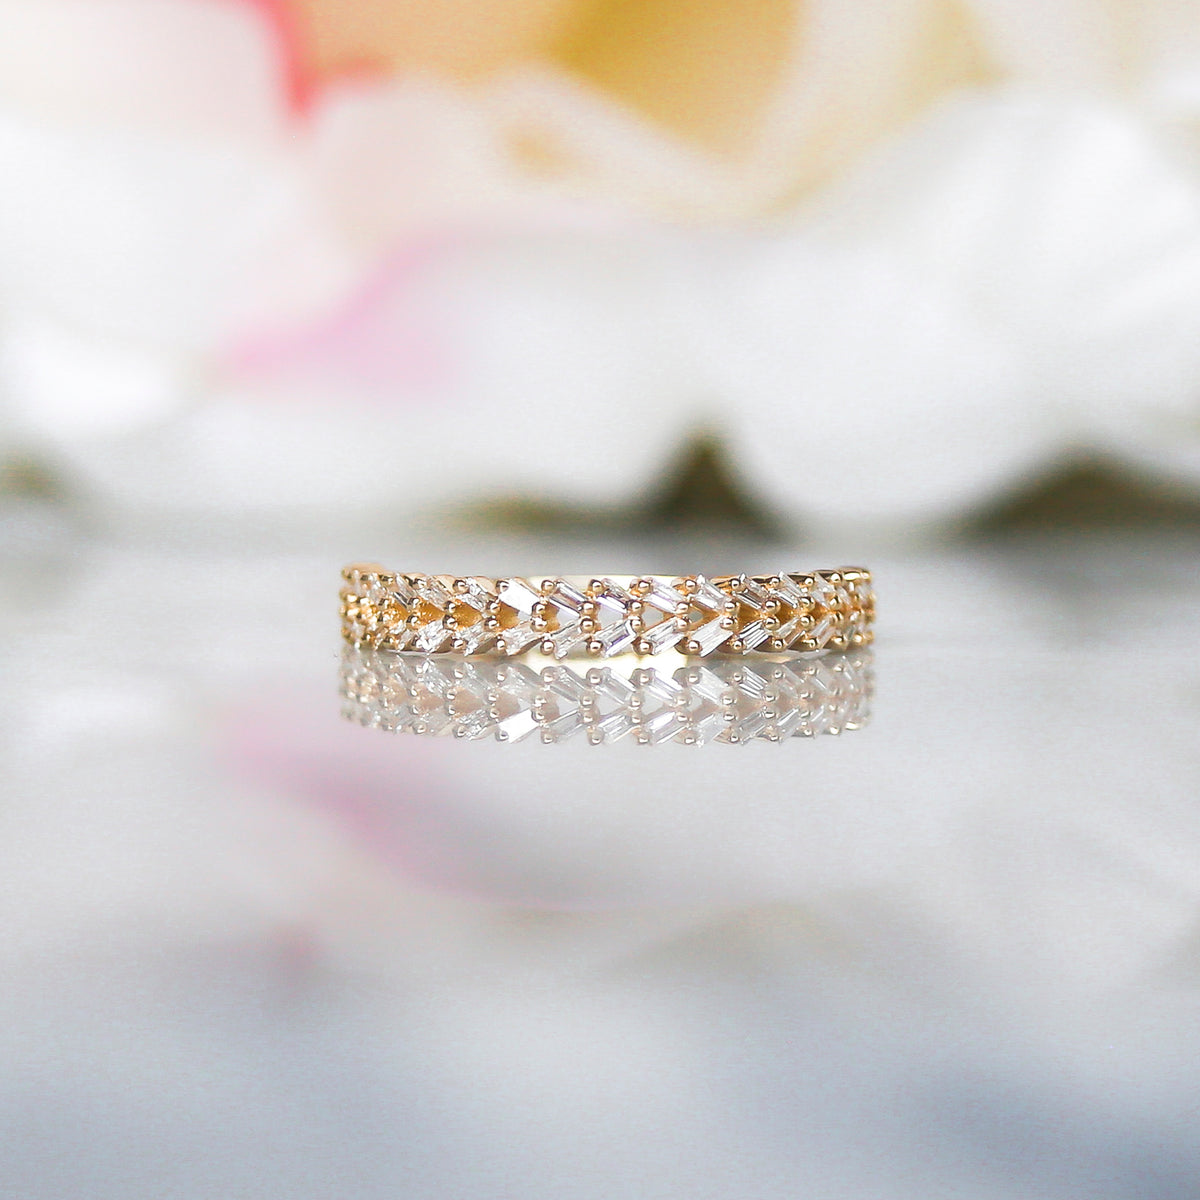 10kt Diamond Rope Of Love Ring